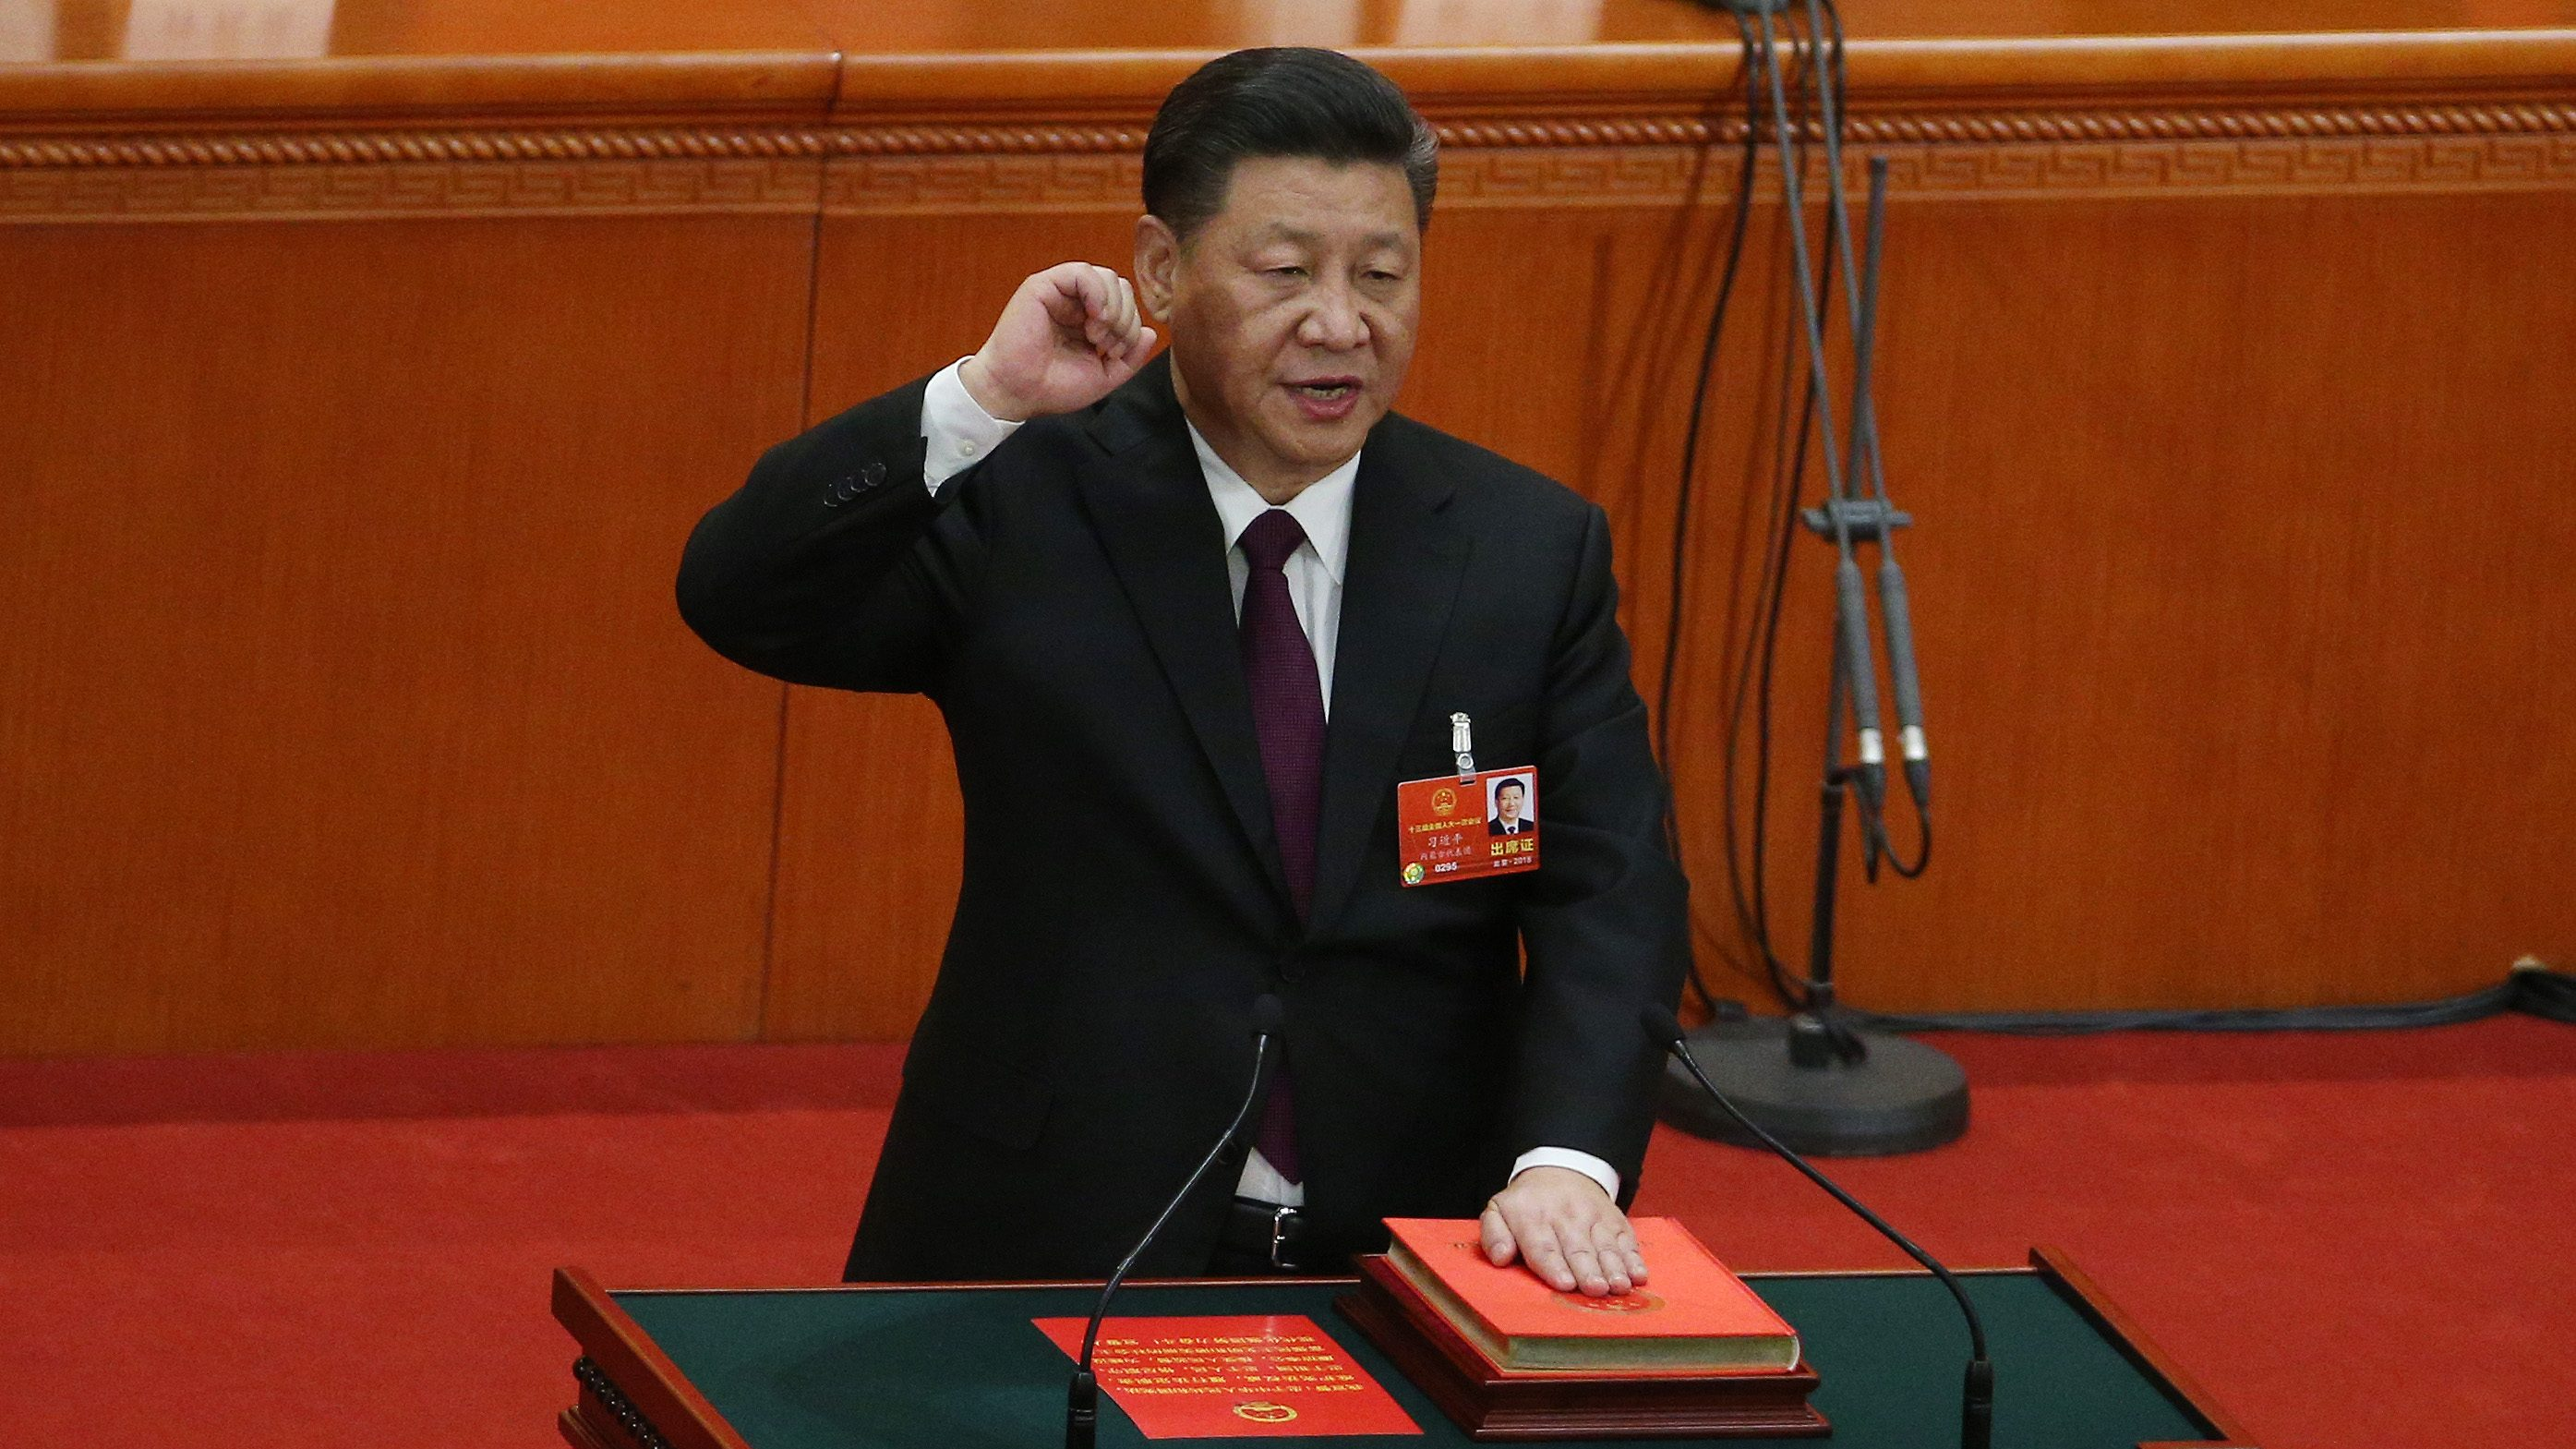 Chinese President Xi Jinping with his hand on the Constitution swears after he is voted as the president for a second term at the fifth plenary session of the first session of the 13th National People's Congress (NPC) at the Great Hall of the People in Beijing, China, 17 March 2018. The NPC has over 3,000 delegates and is the world's largest parliament or legislative assembly though its function is largely as a formal seal of approval for the policies fixed by the leaders of the Chinese Communist Party. The NPC runs alongside the annual plenary meetings of the Chinese People's Political Consultative Conference (CPPCC), together known as 'Lianghui' or 'Two Meetings'.